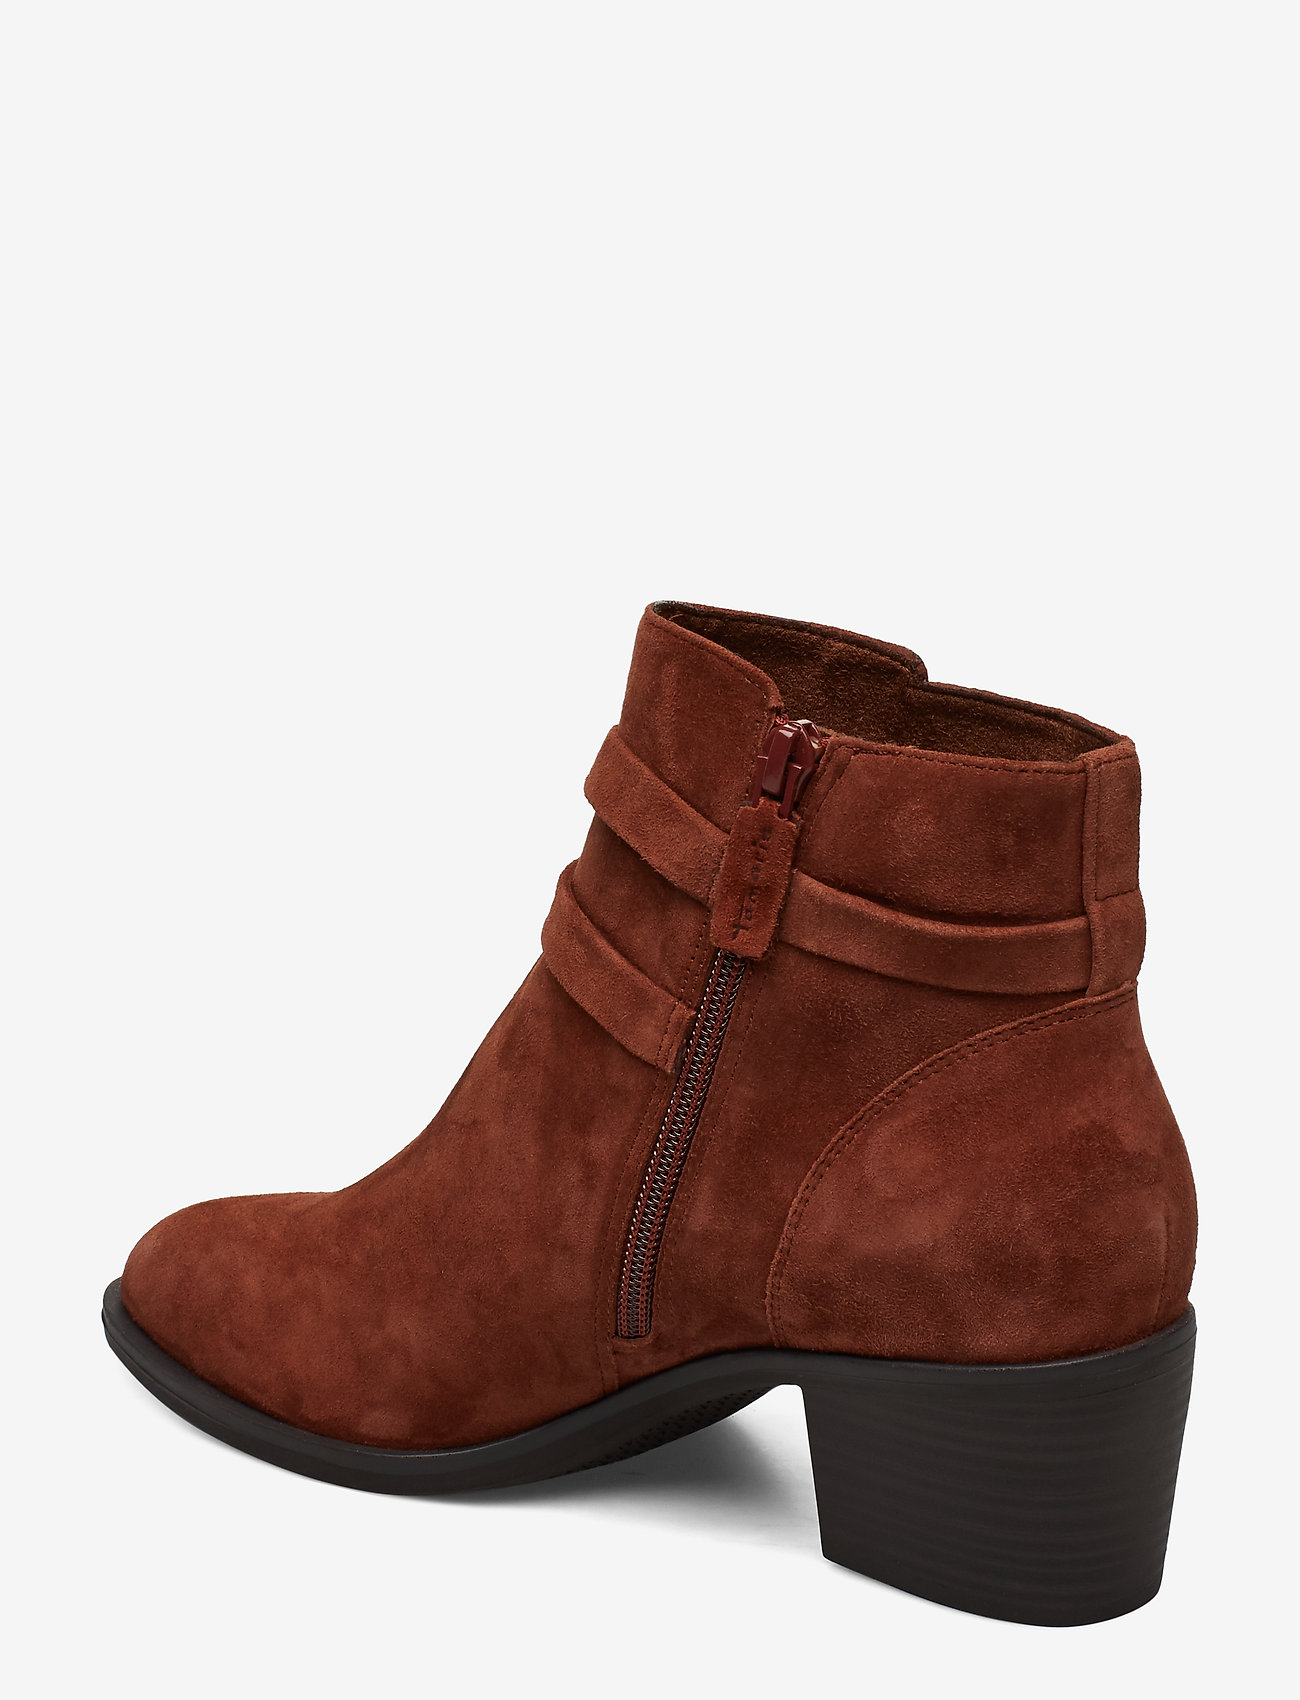 Woms Boots (Chestnut) (89.95 €) - Tamaris Nky1n